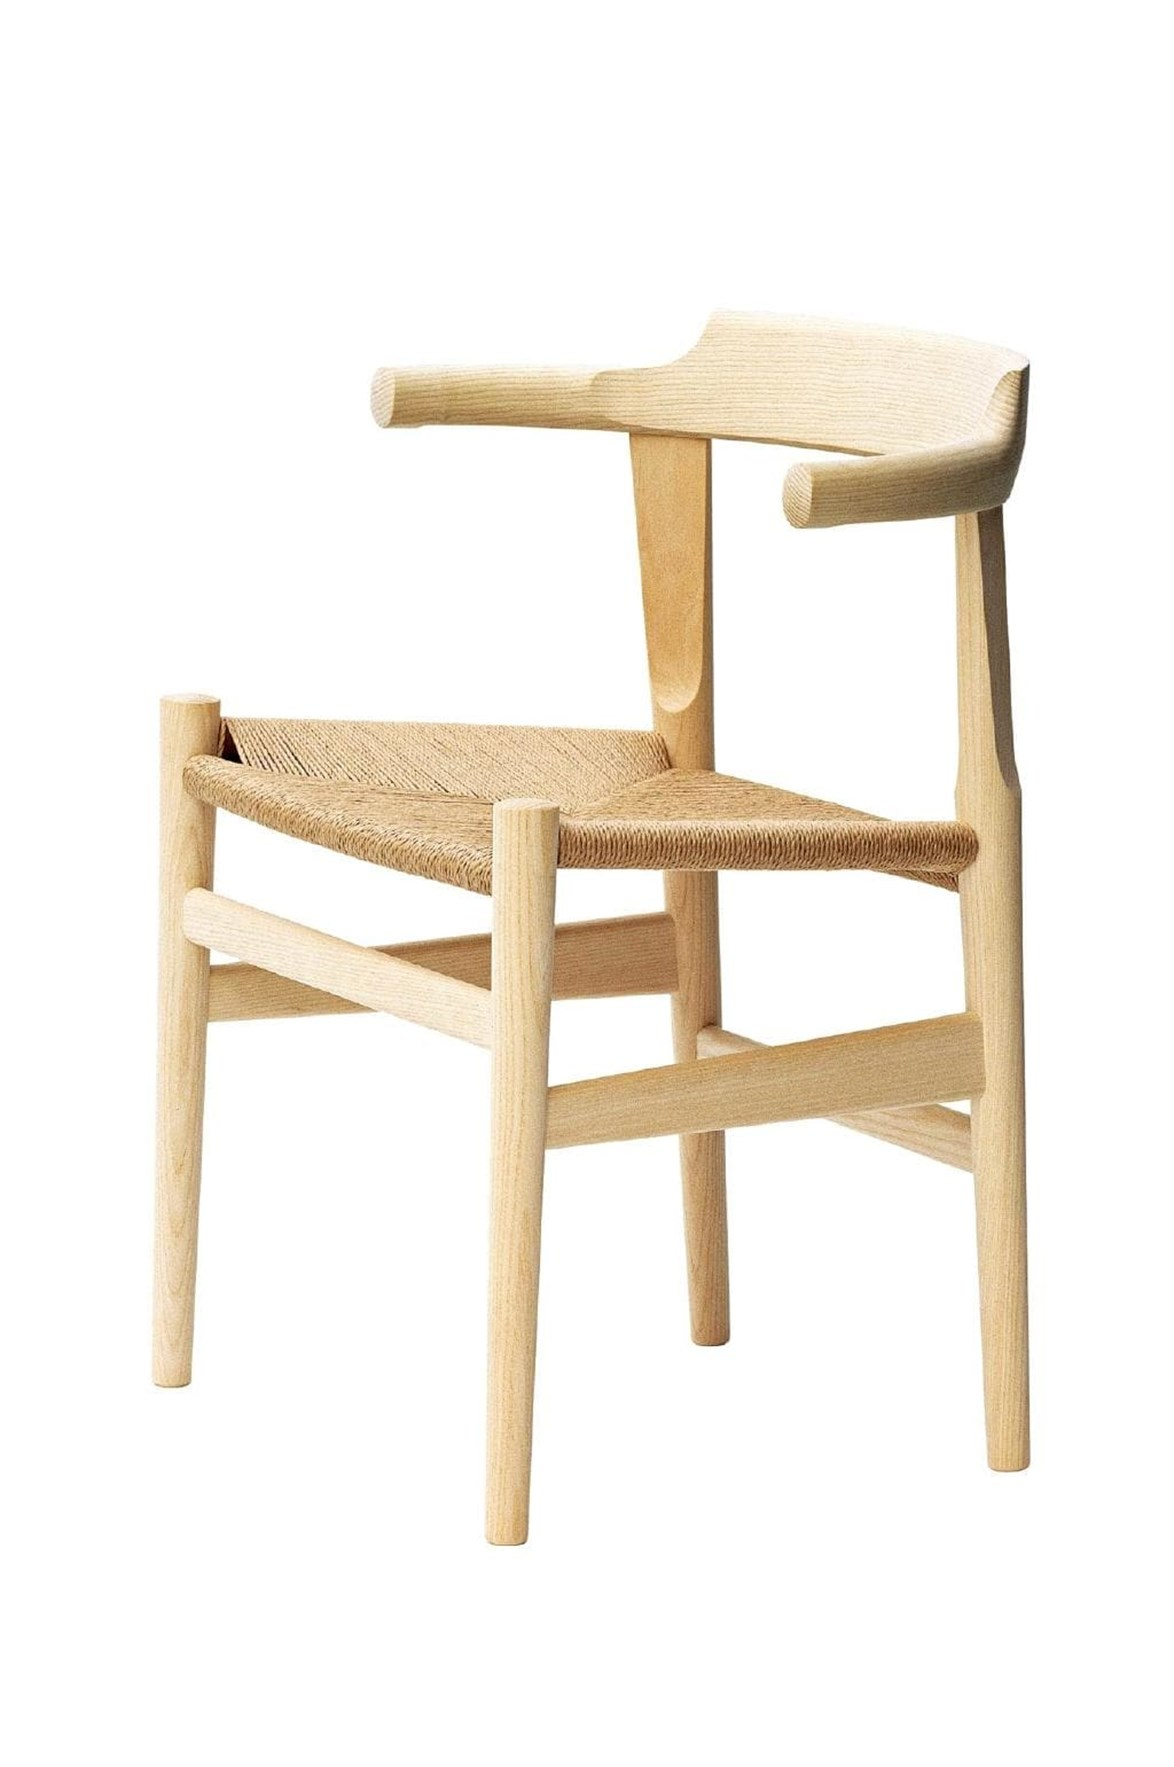 "PP Møbler 'PP68' chair by Hans J. Wegner in Soap-treated Oak, $1780, [Cult](https://cultdesign.com.au/shop/pp58-pp68|target=""_blank""